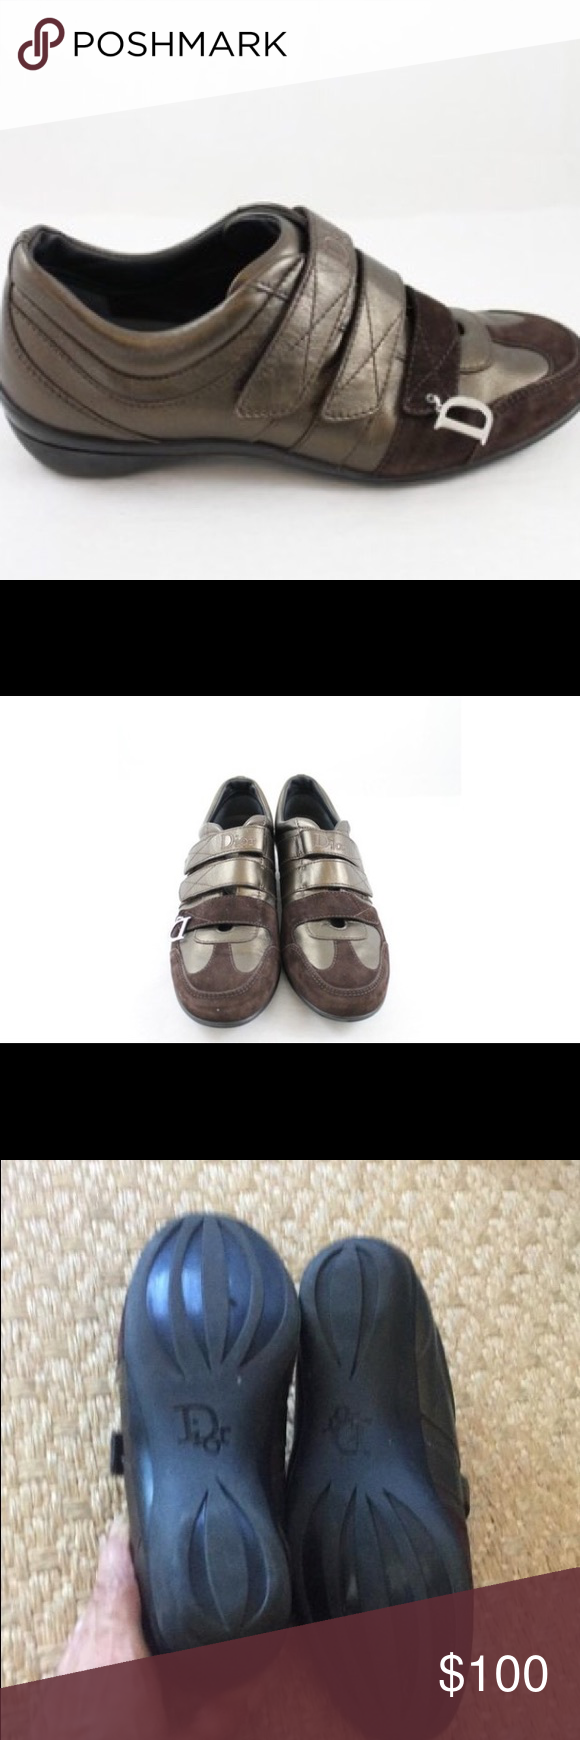 b7cf64e7e64b Dior 🌹price dropped Christian Dior velcro athletic shoes. Two tone brown  suede and bronze